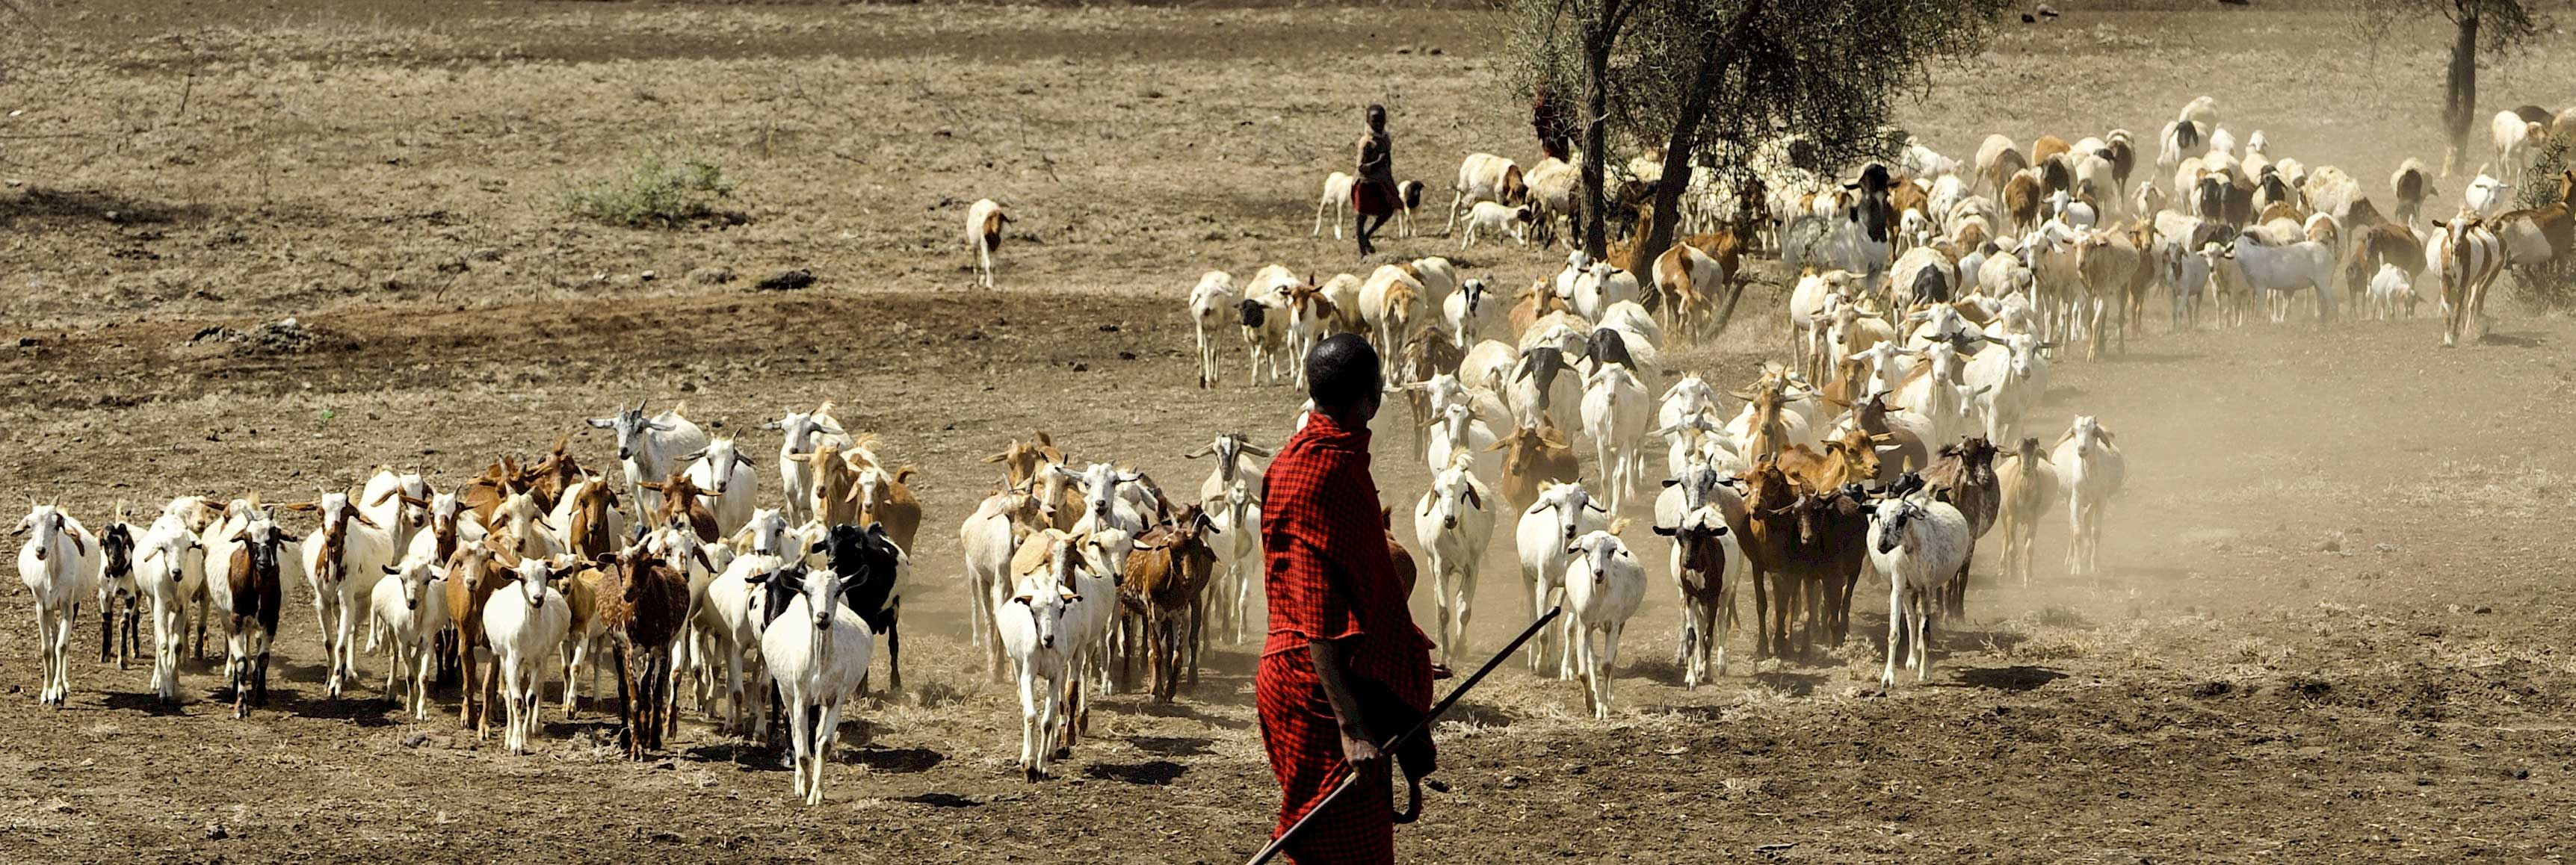 person herding goats in Africa